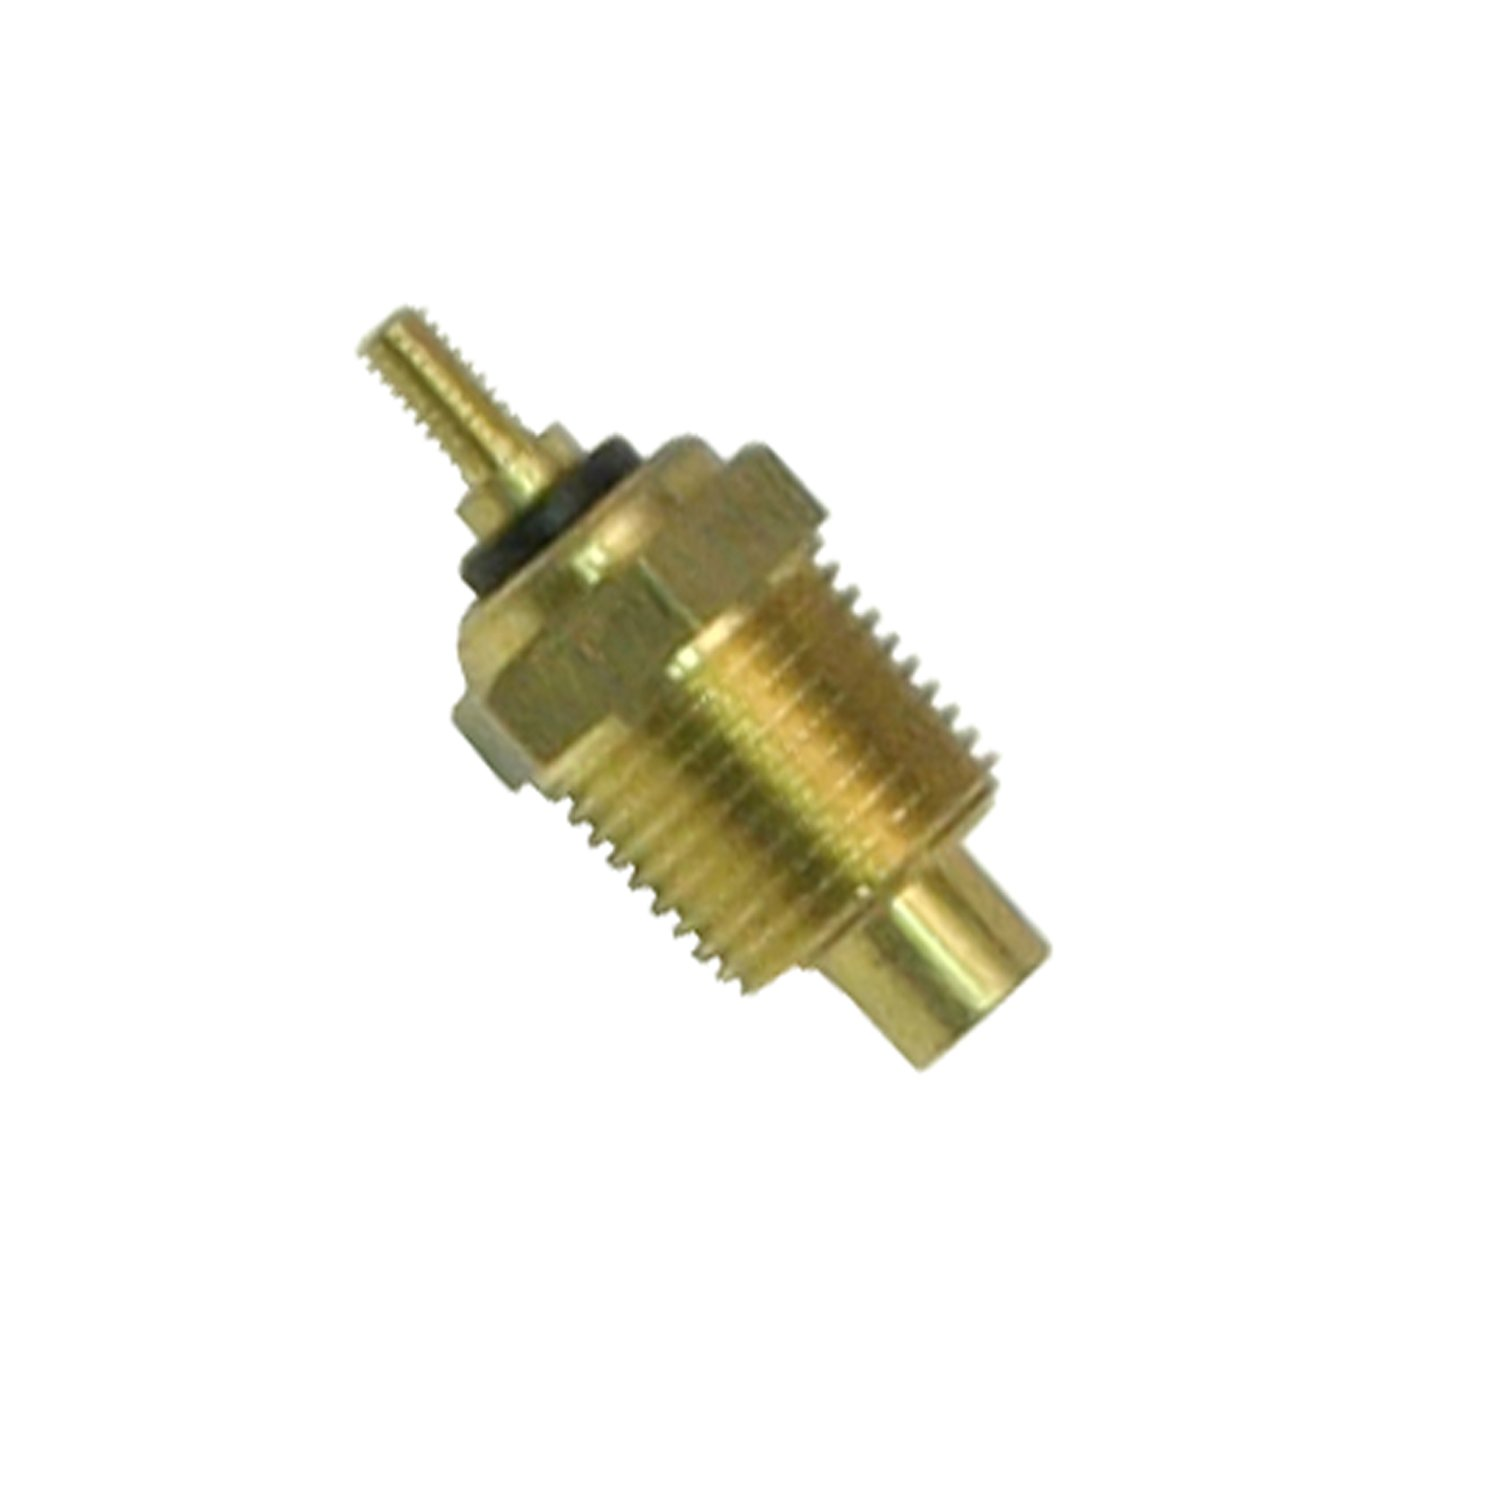 Beck Arnley 201-2038 Temperature Sender Switch with Gauge